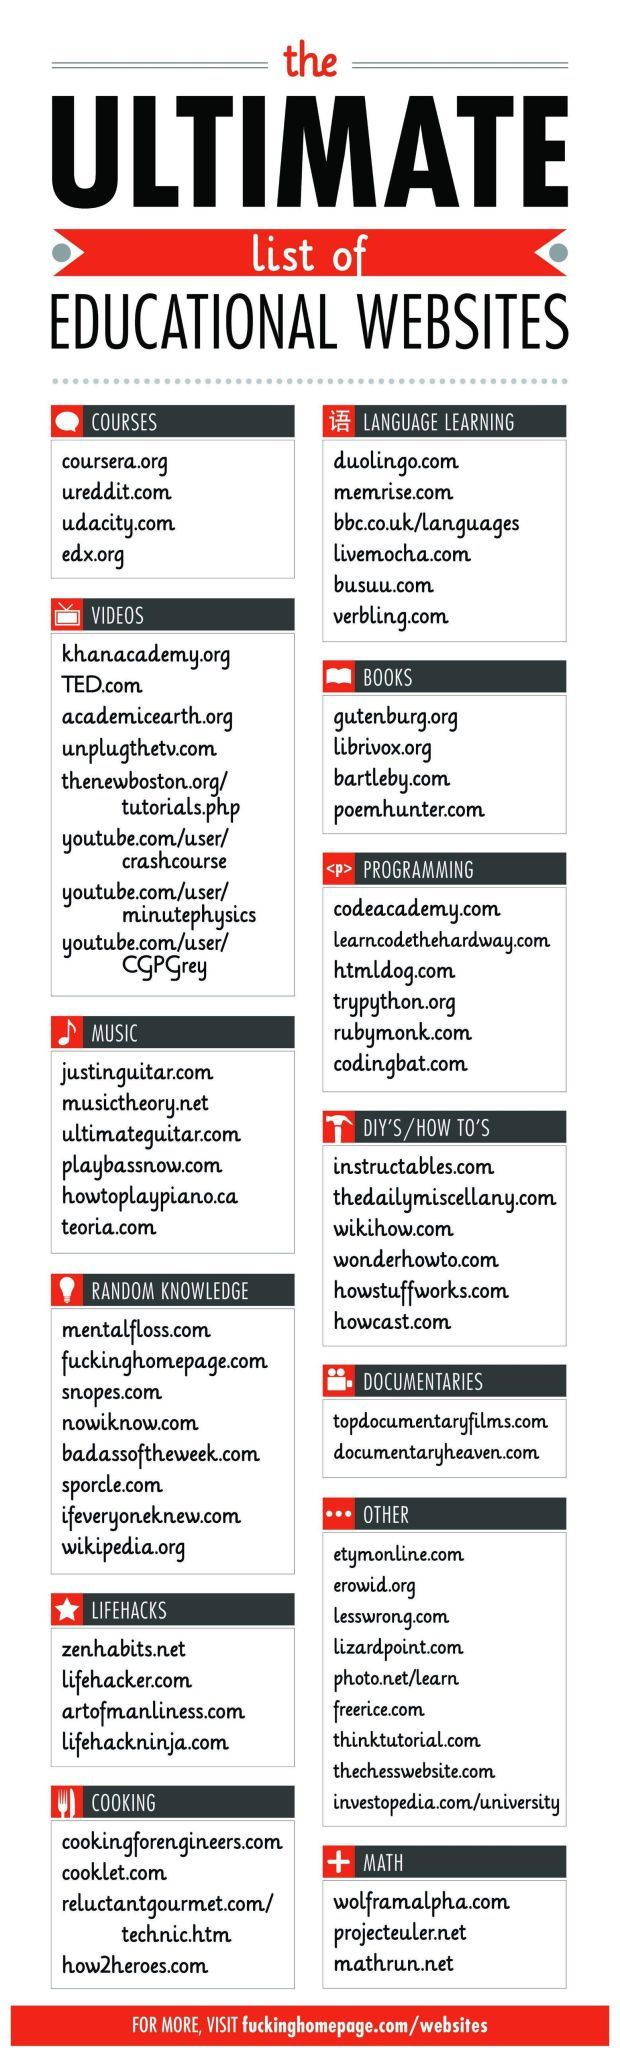 "The Ultimate List of Educational Websites The author says, ""You can learn nearly anything and everything from the internet, the only trouble is finding reliable sources for information. Below is an infographic that has put together some of the most useful sites when it comes to learning something new.  I myself learned how to design and code purely from the internet - no schooling whatsoever. So if you're looking to learn code, the sites listed in the infographic below are some great…"